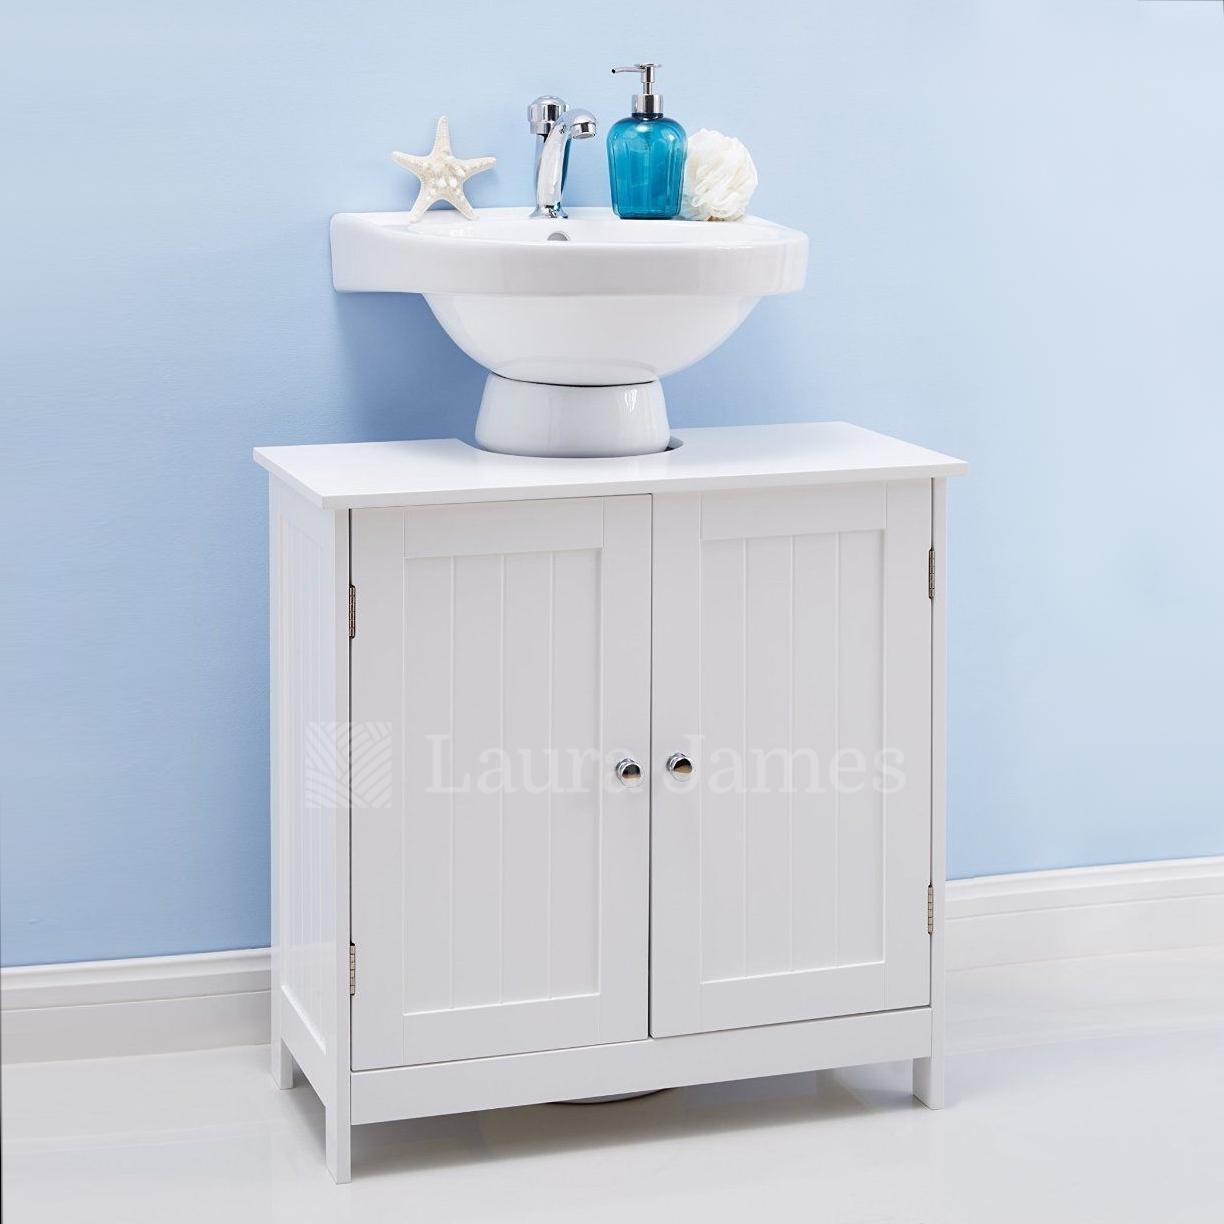 sink storage bathroom sink bathroom cabinet storage unit cupboard white ebay 14444 | 1a 0